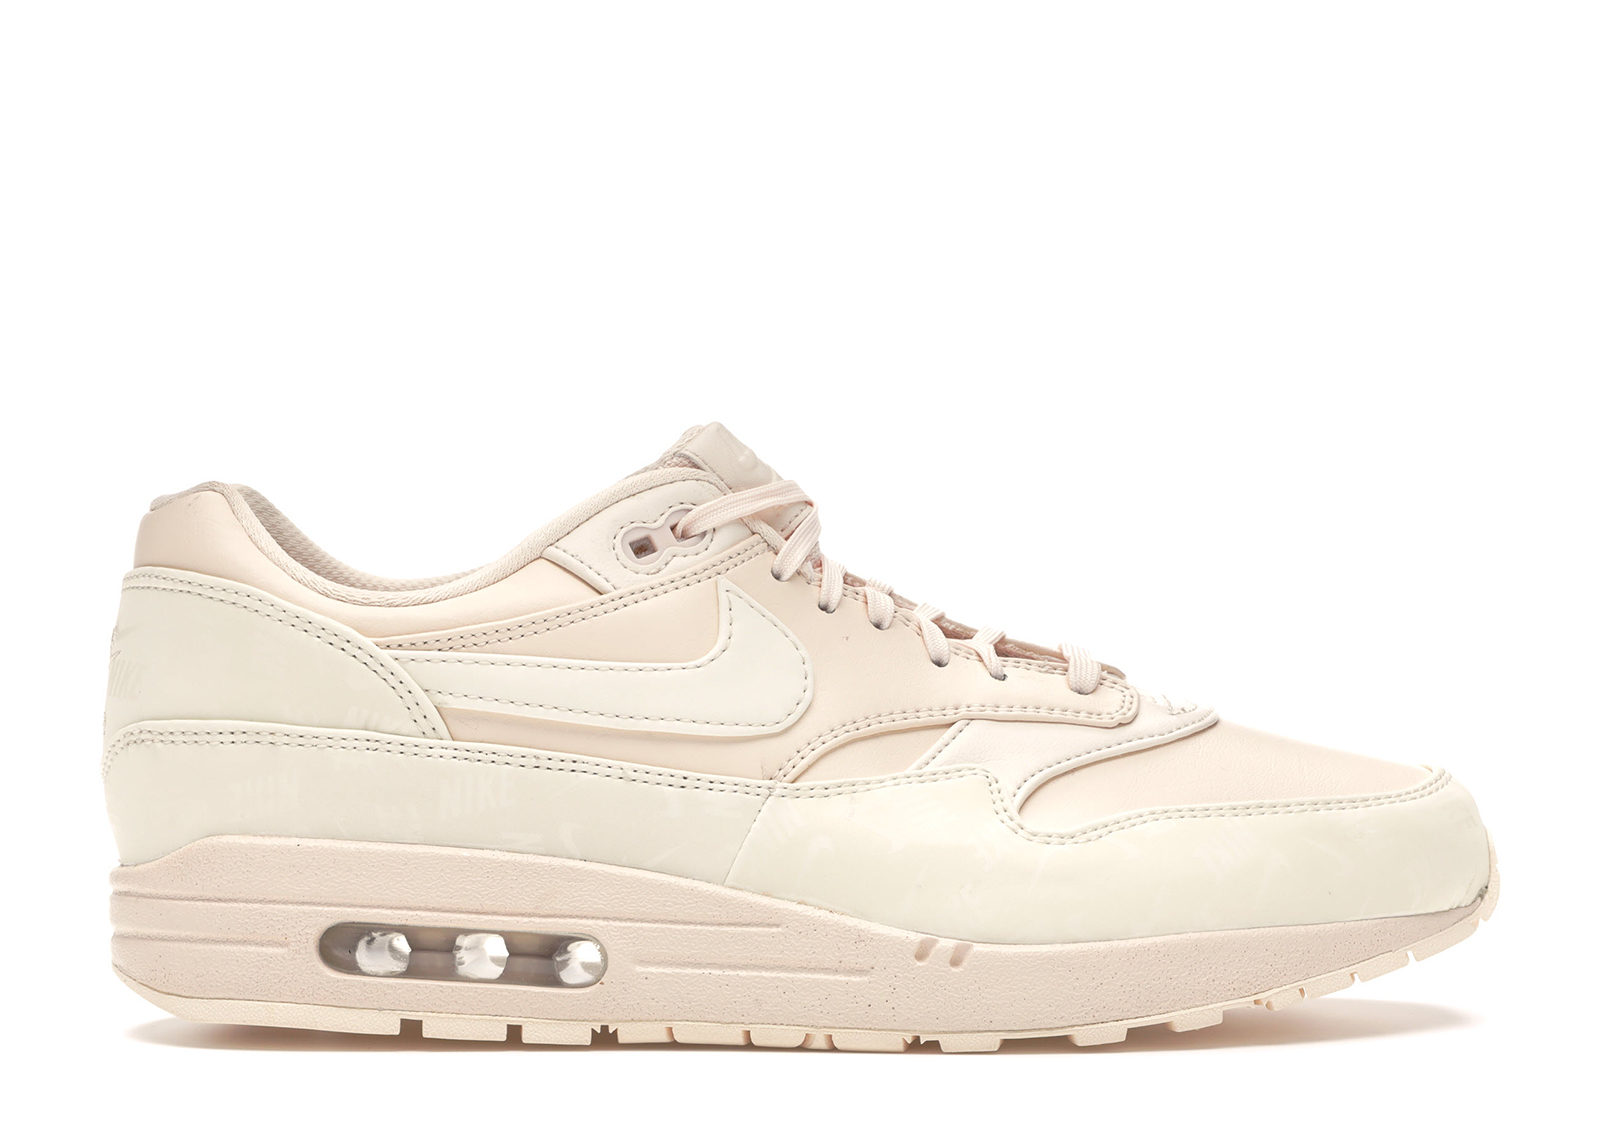 Air Max 1 LX Guava Ice (W)